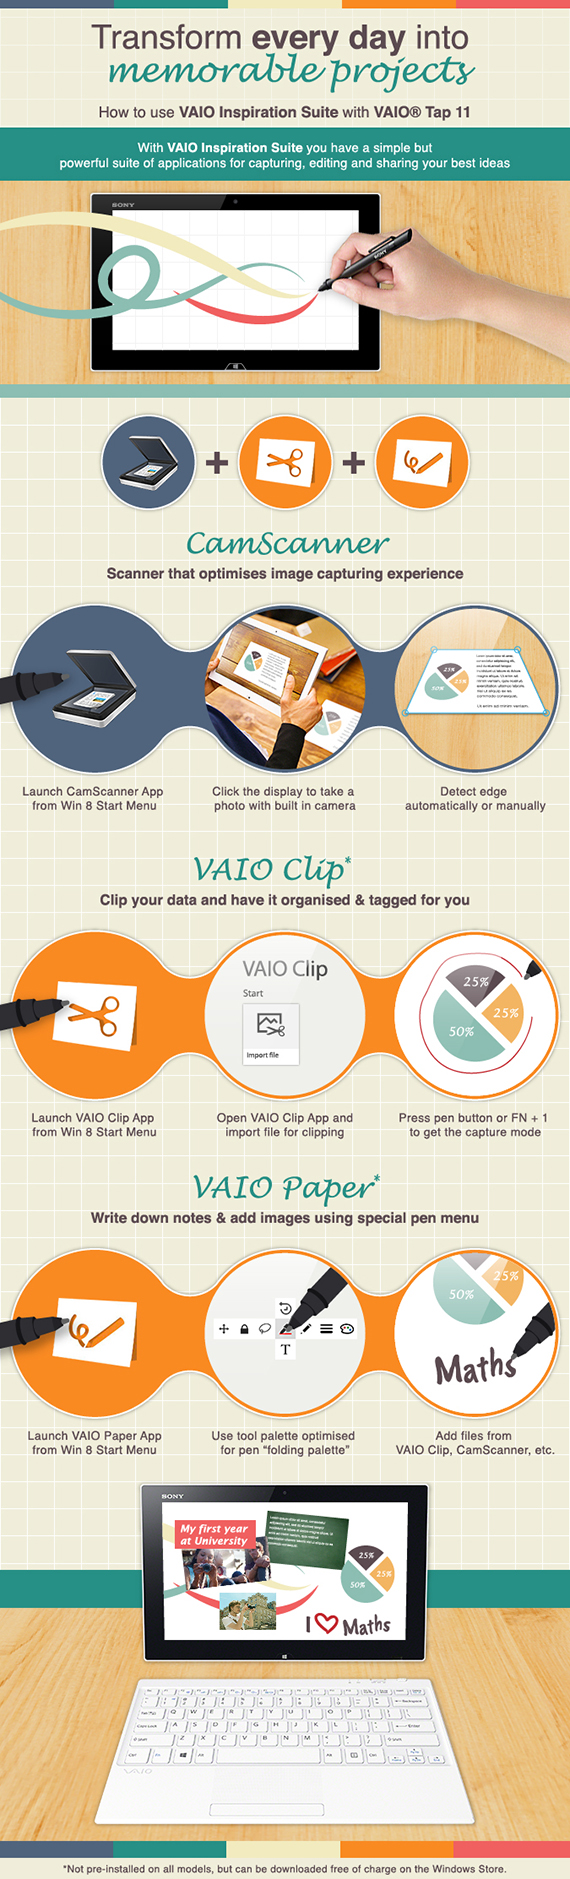 How to use VAIO Inspiration Suite - Infographic